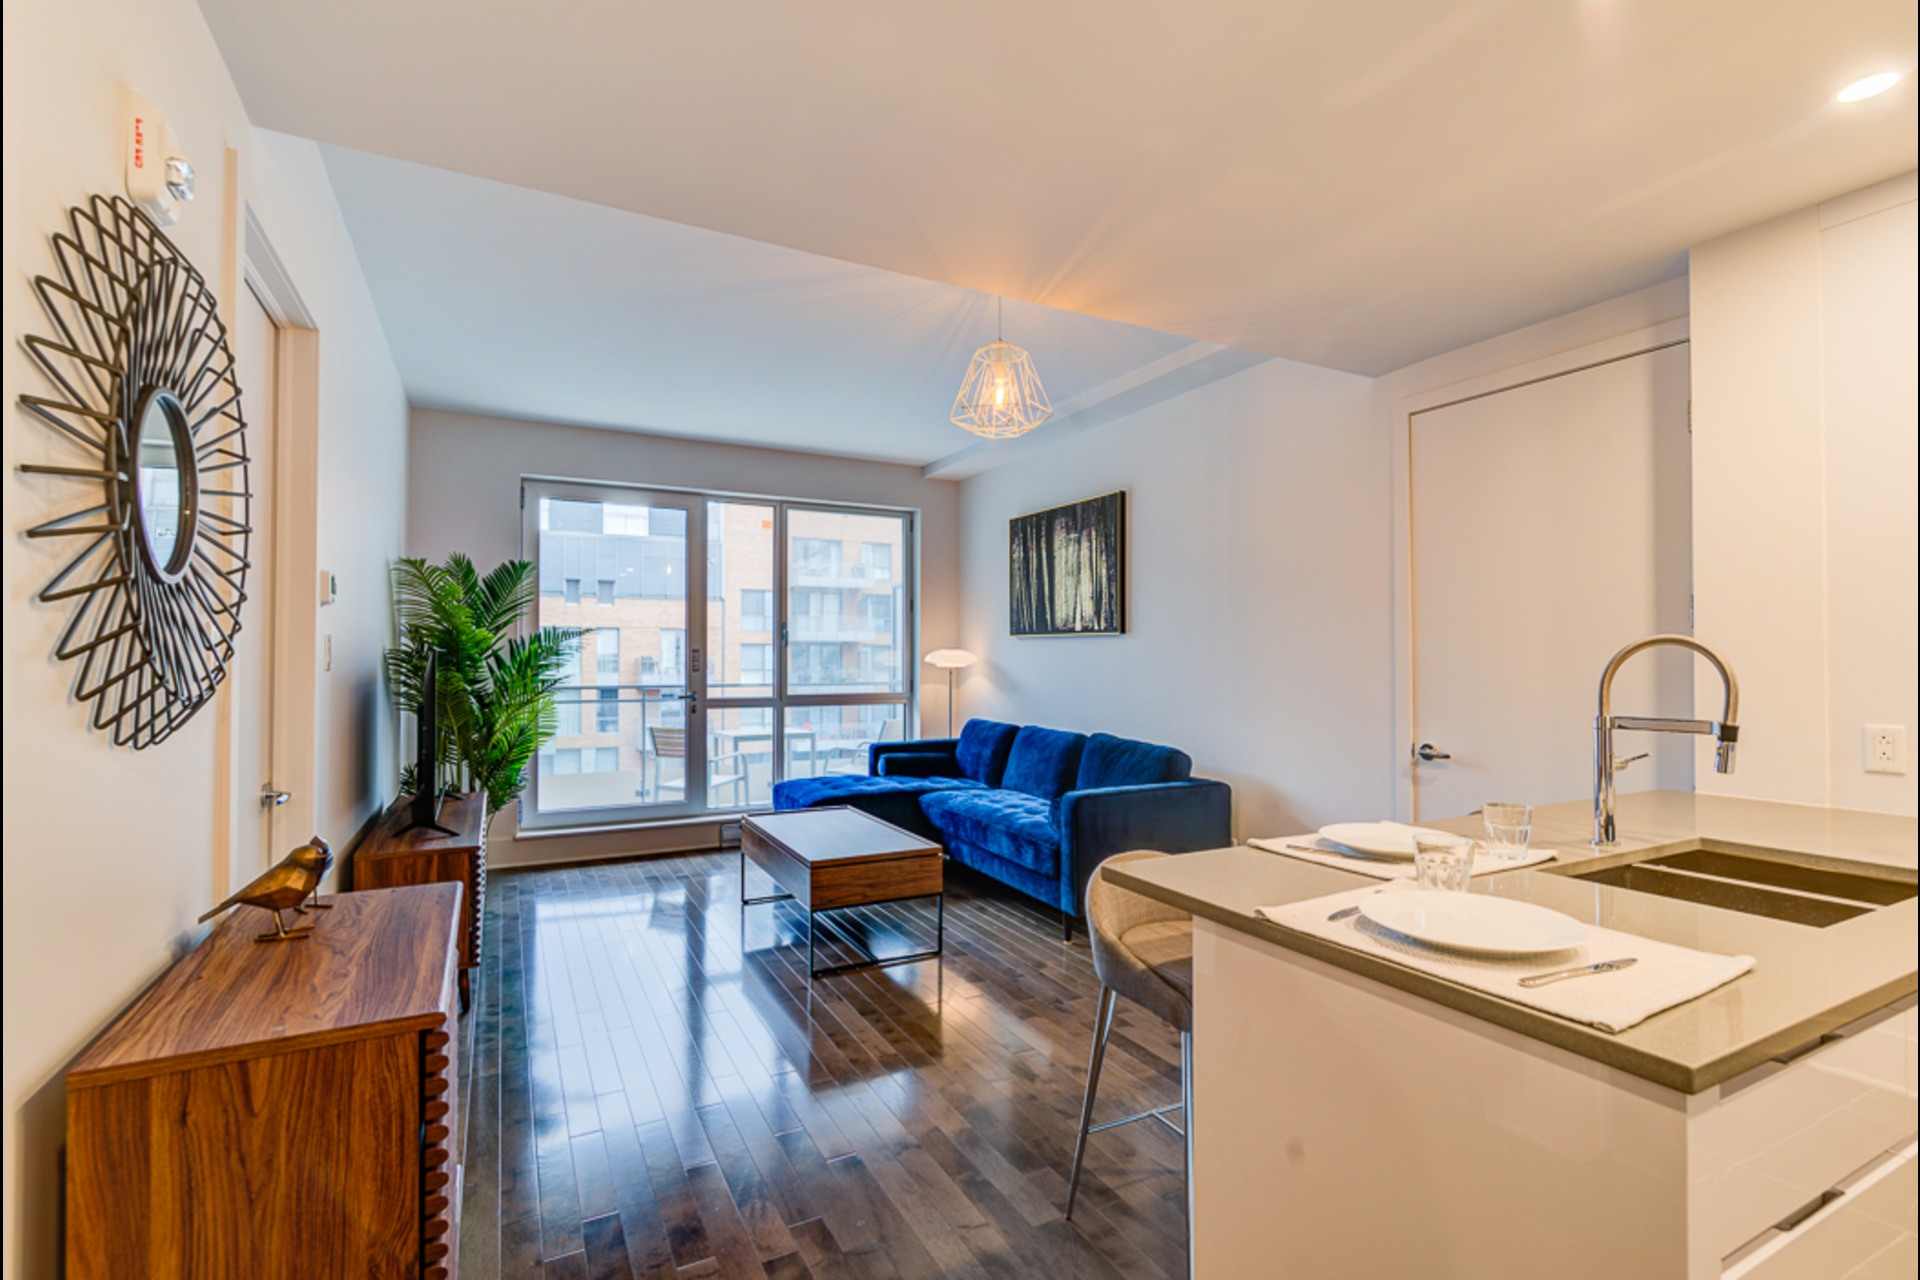 Condo For rent Montréal - 3 rooms